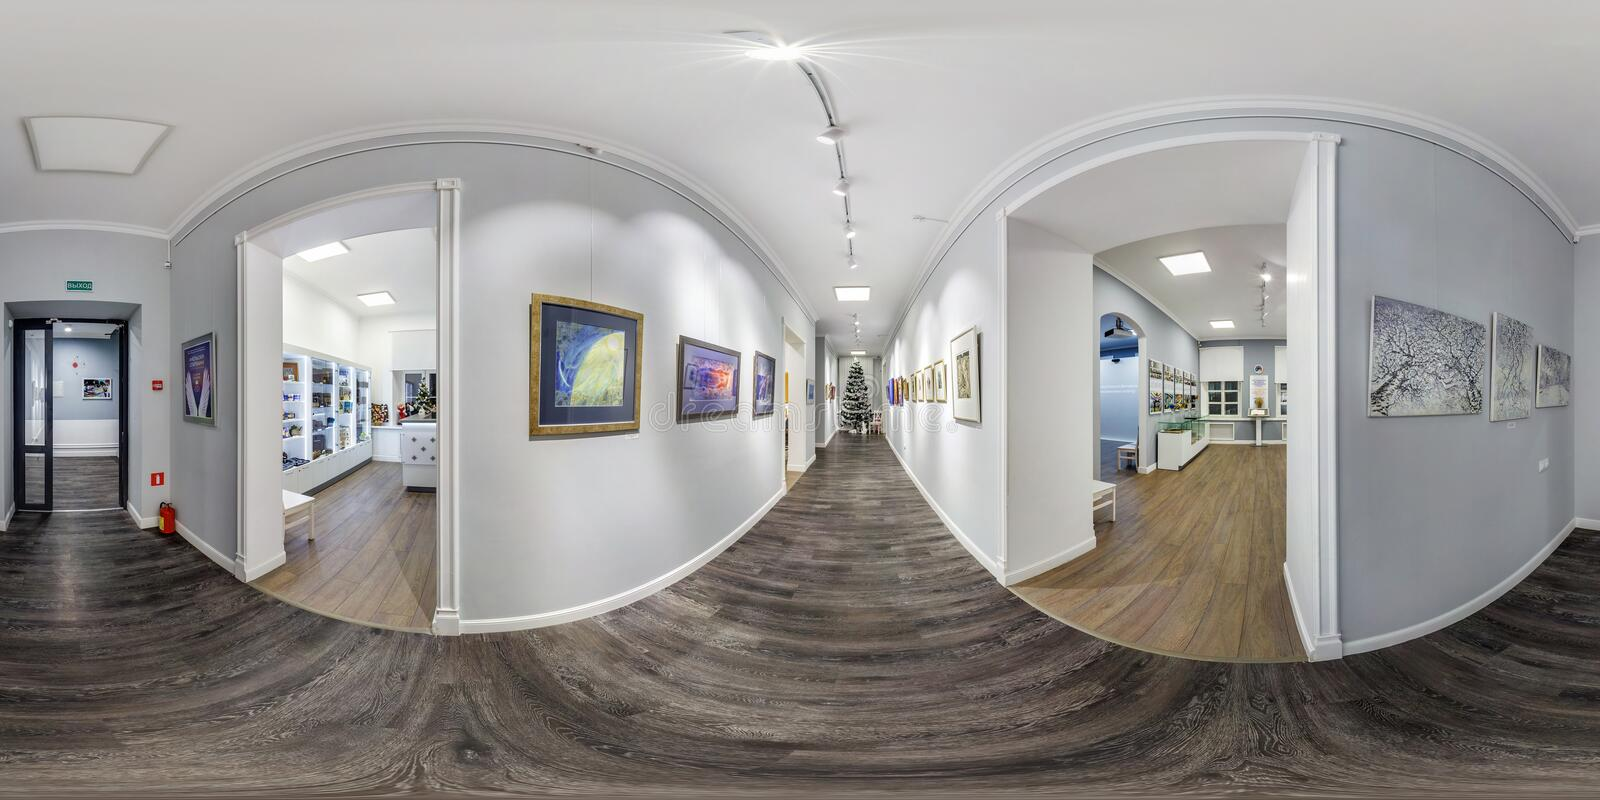 GRODNO, BELARUS - december, 2018: Full seamless spherical panorama 360 degrees angle view in interior of contemporary art gallery. In equirectangular projection royalty free stock image